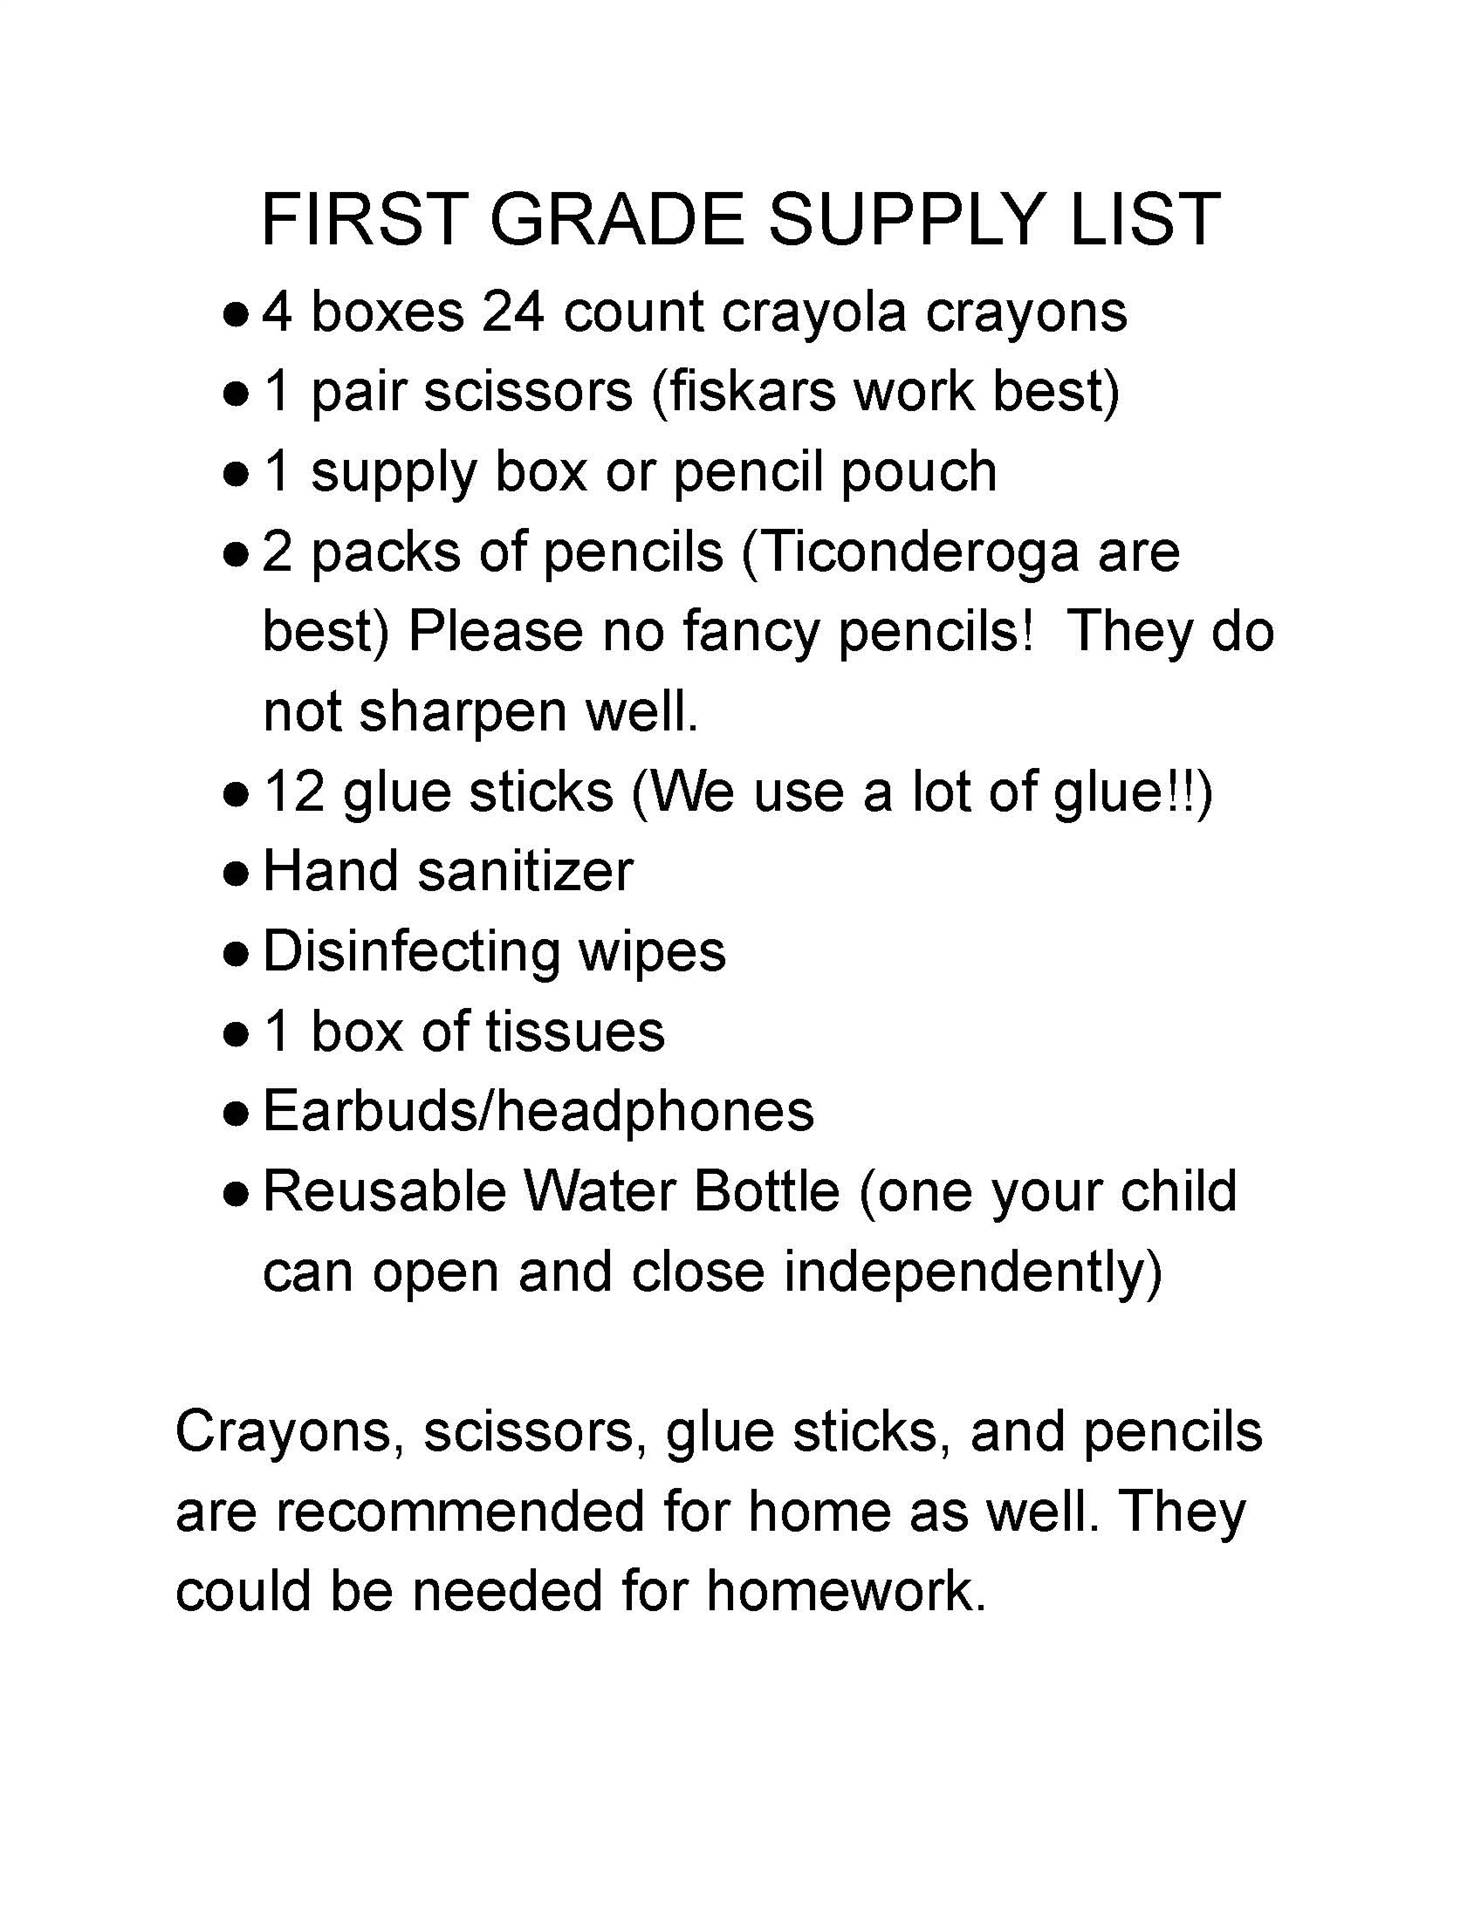 Central 1st Grade Suggested School Supply List